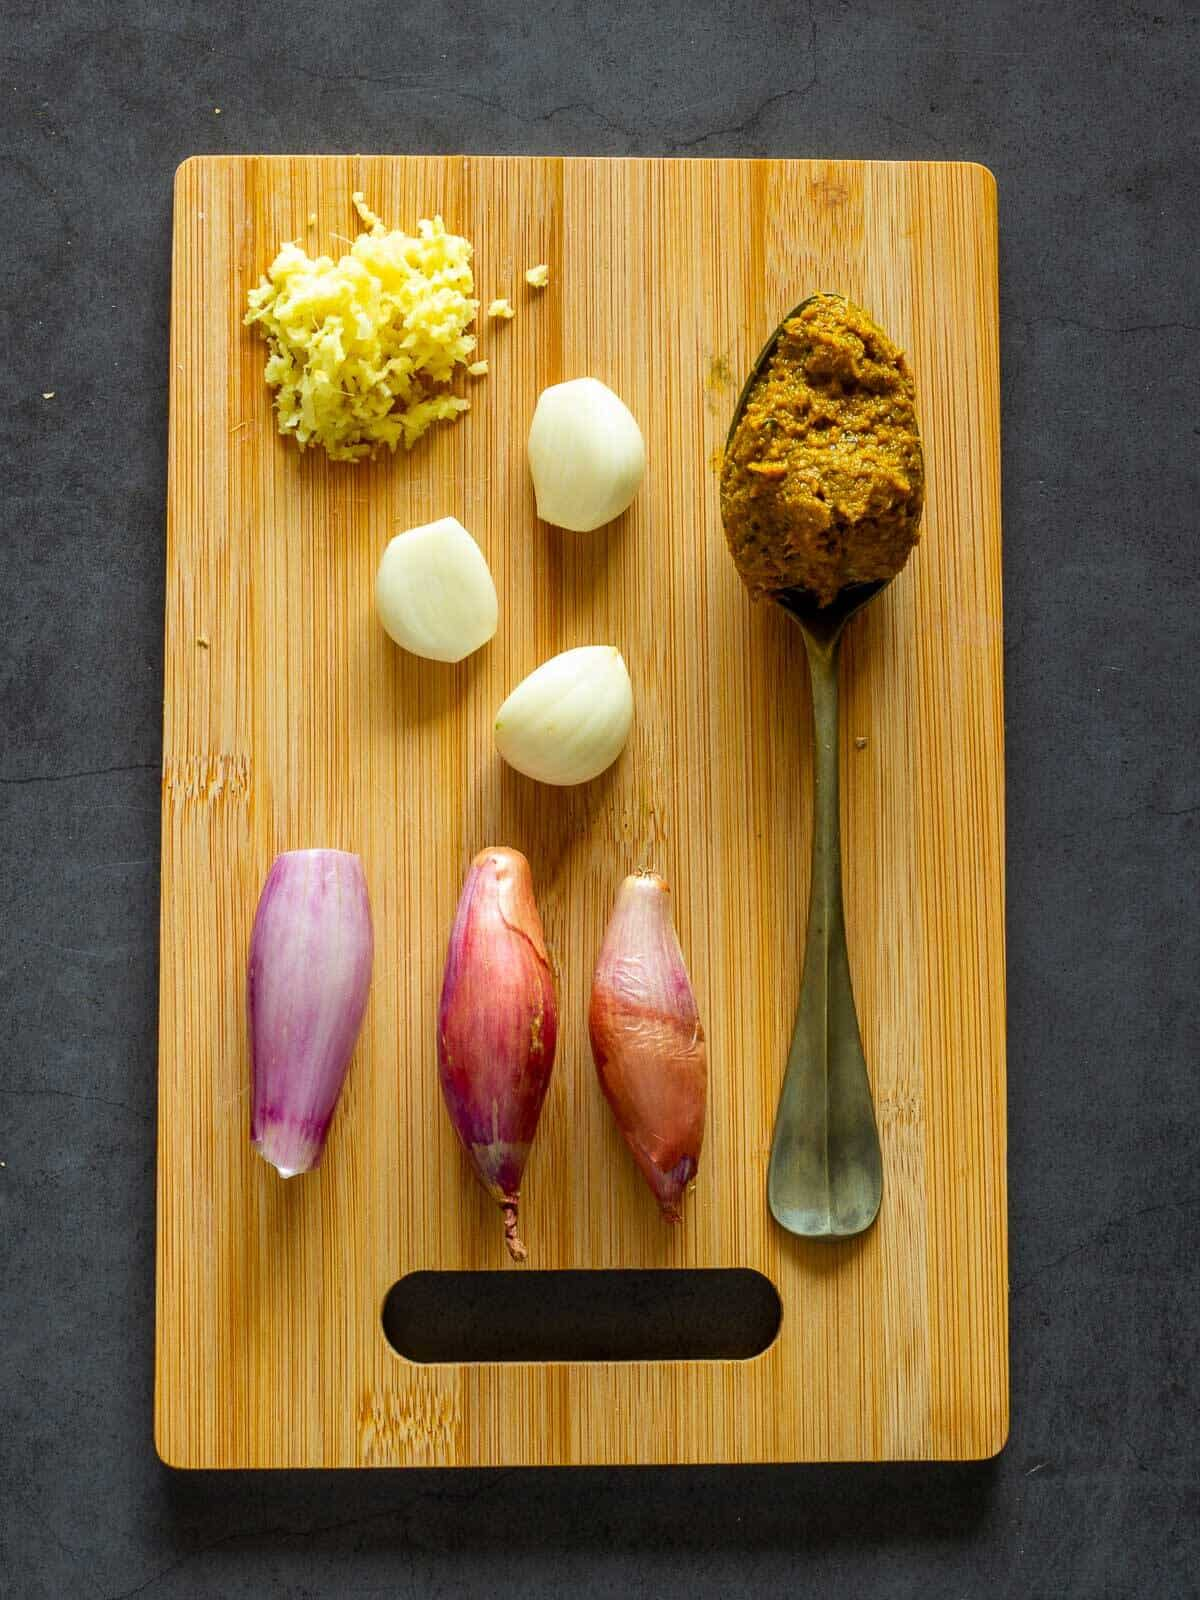 Yellow Curry with Garlic and Shallots